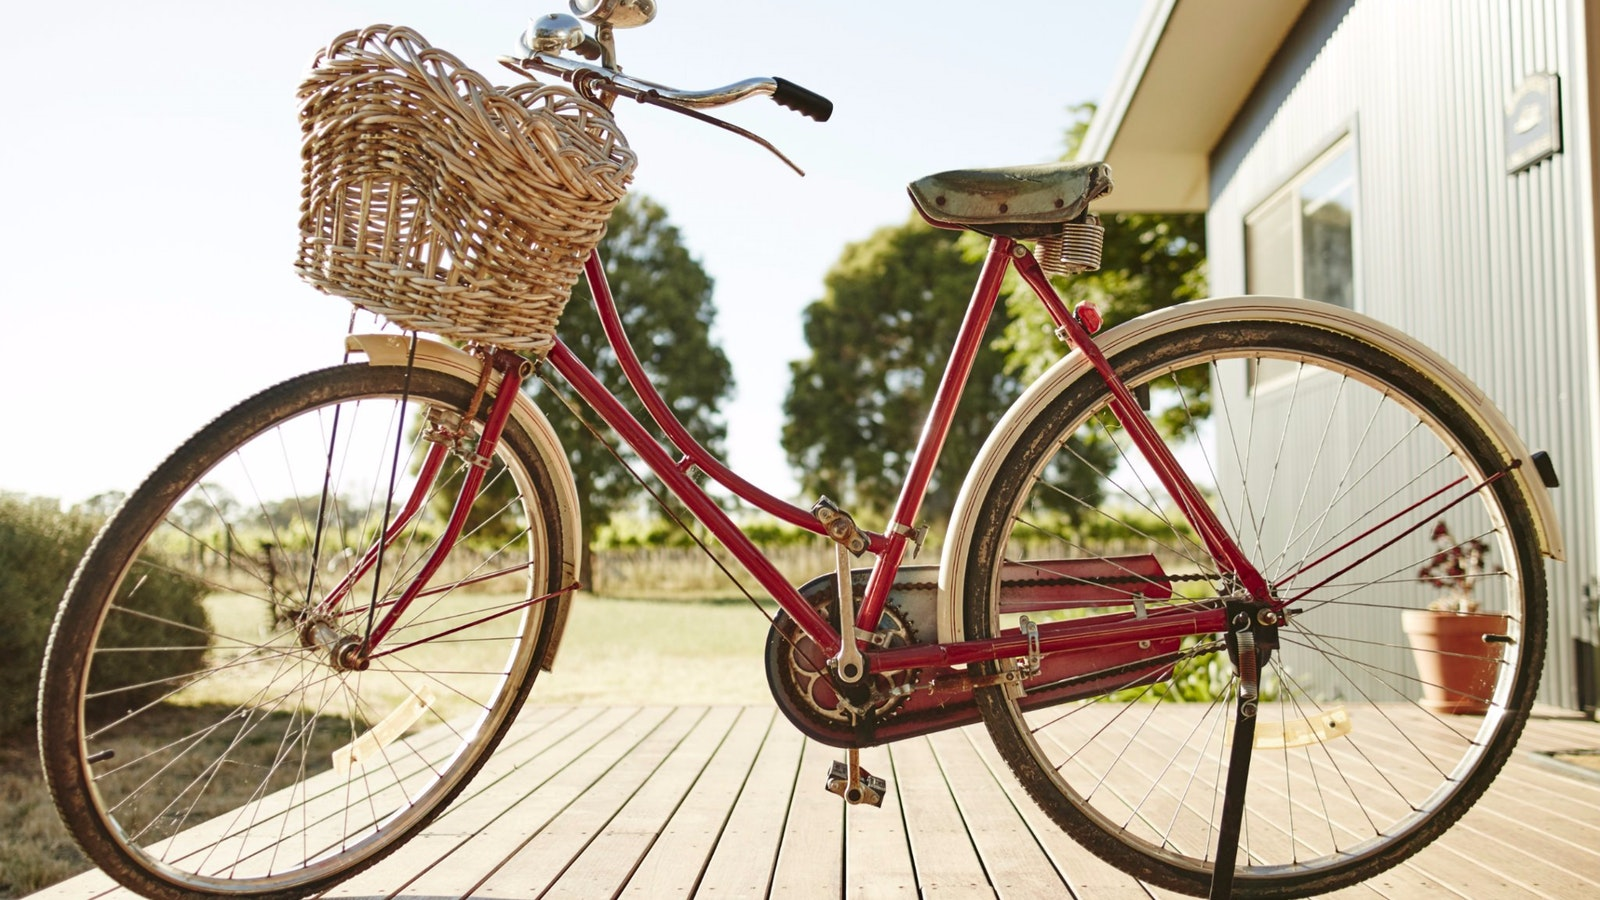 Red bike which is used to ride around the property and area